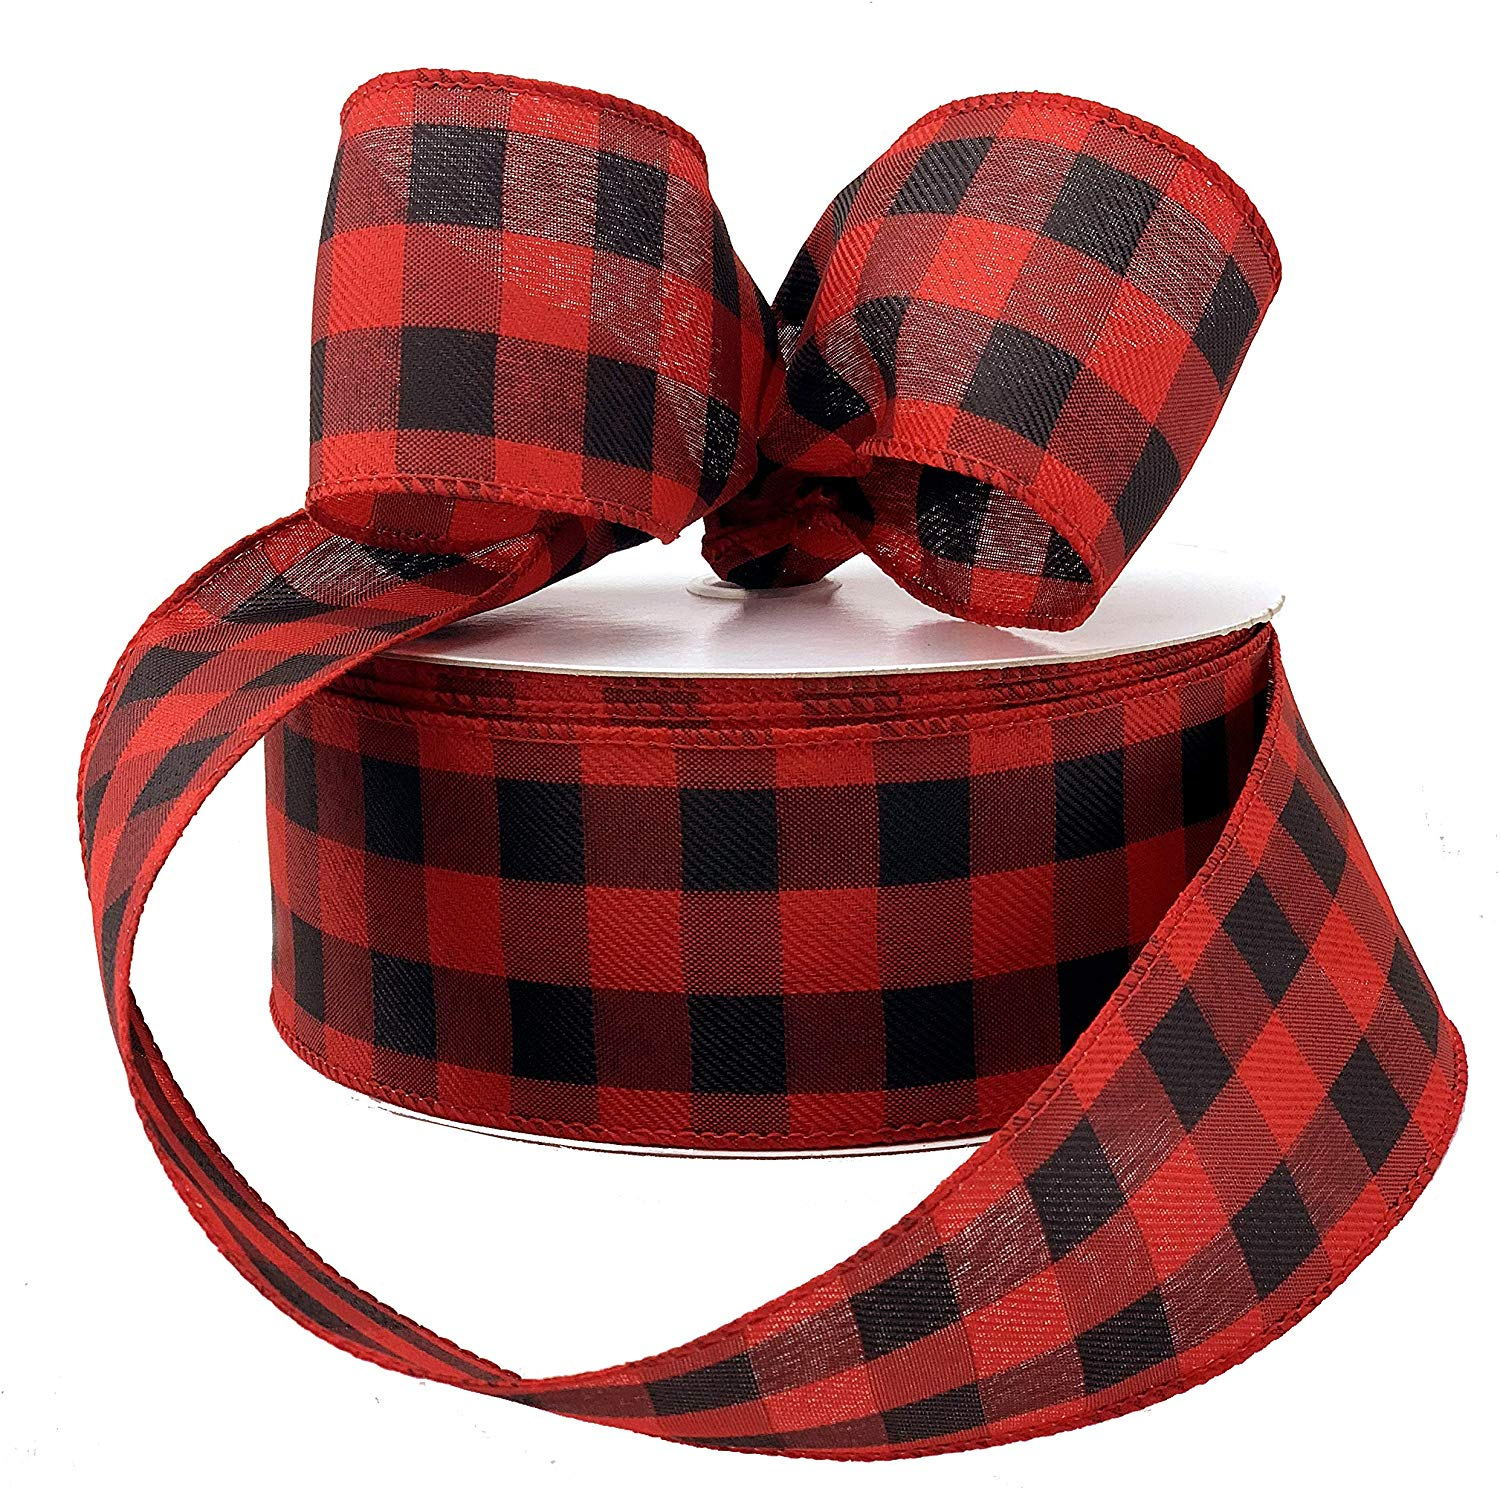 Buffalo Plaid Wired Ribbon Decoration 2 1 2 X 50 Yards Black Red Plaid Valentine S Day Christmas Wreath Farmhouse Decor Garland Gifts Wrapping Wreaths Bows Walmart Com Walmart Com